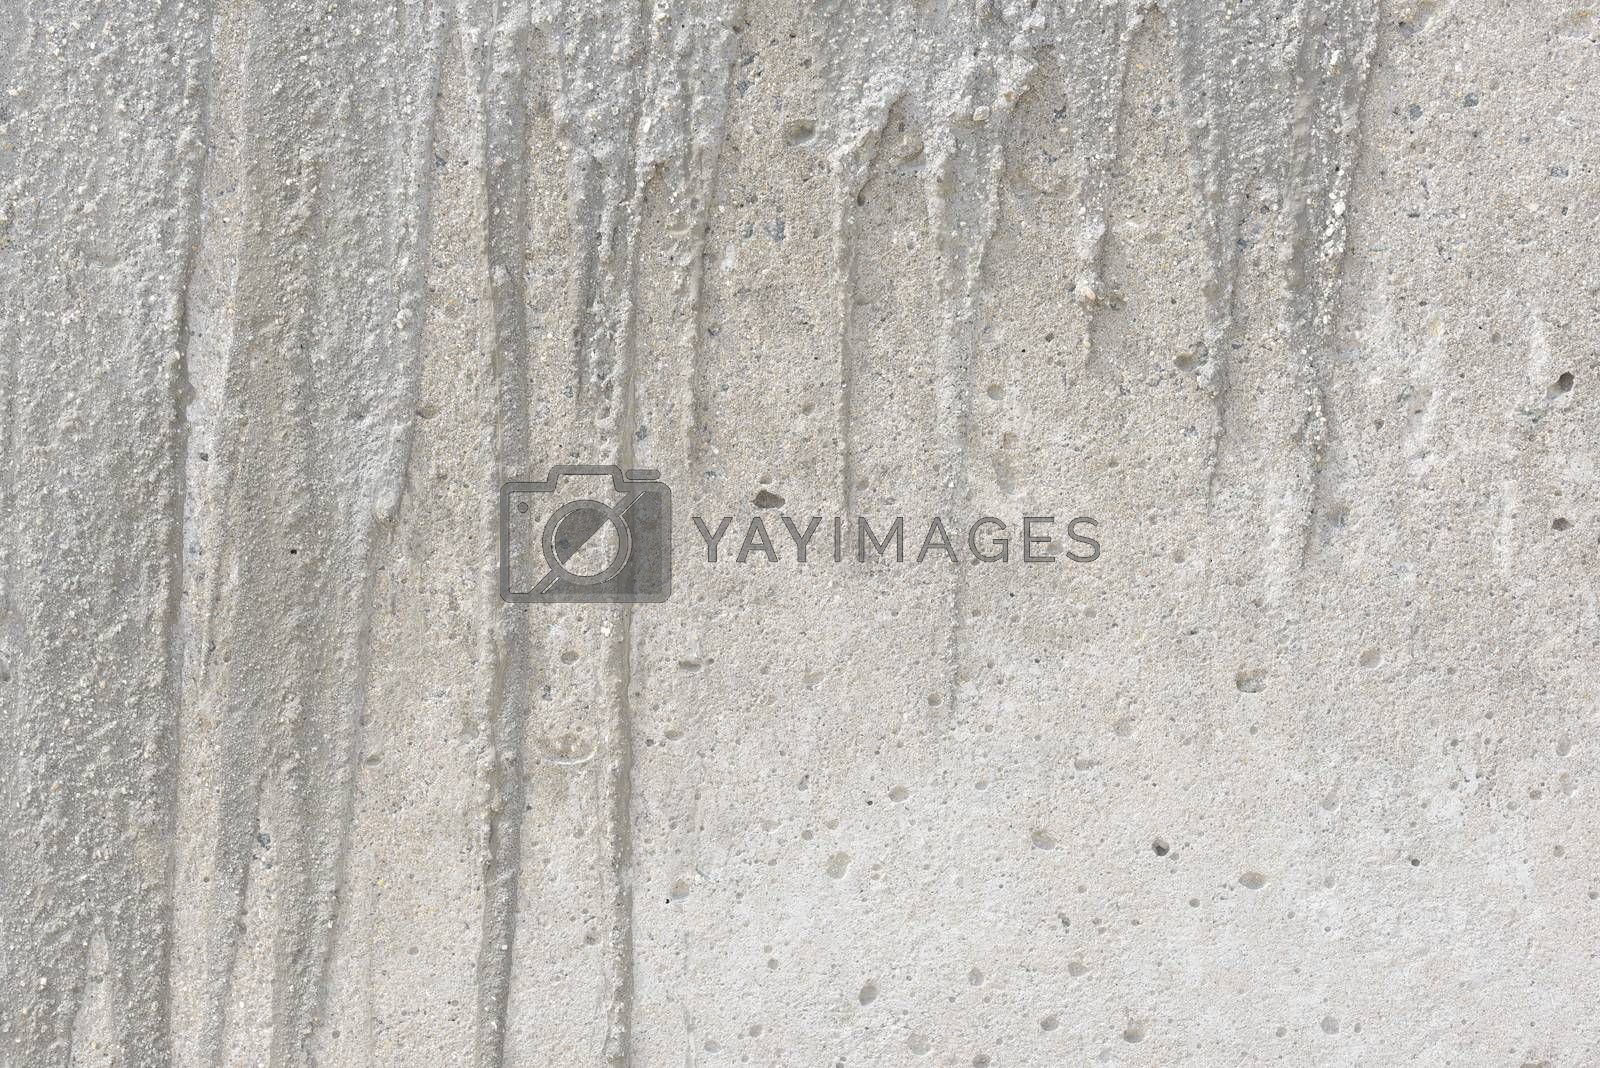 Texture of old gray concrete wall. Concrete wall background